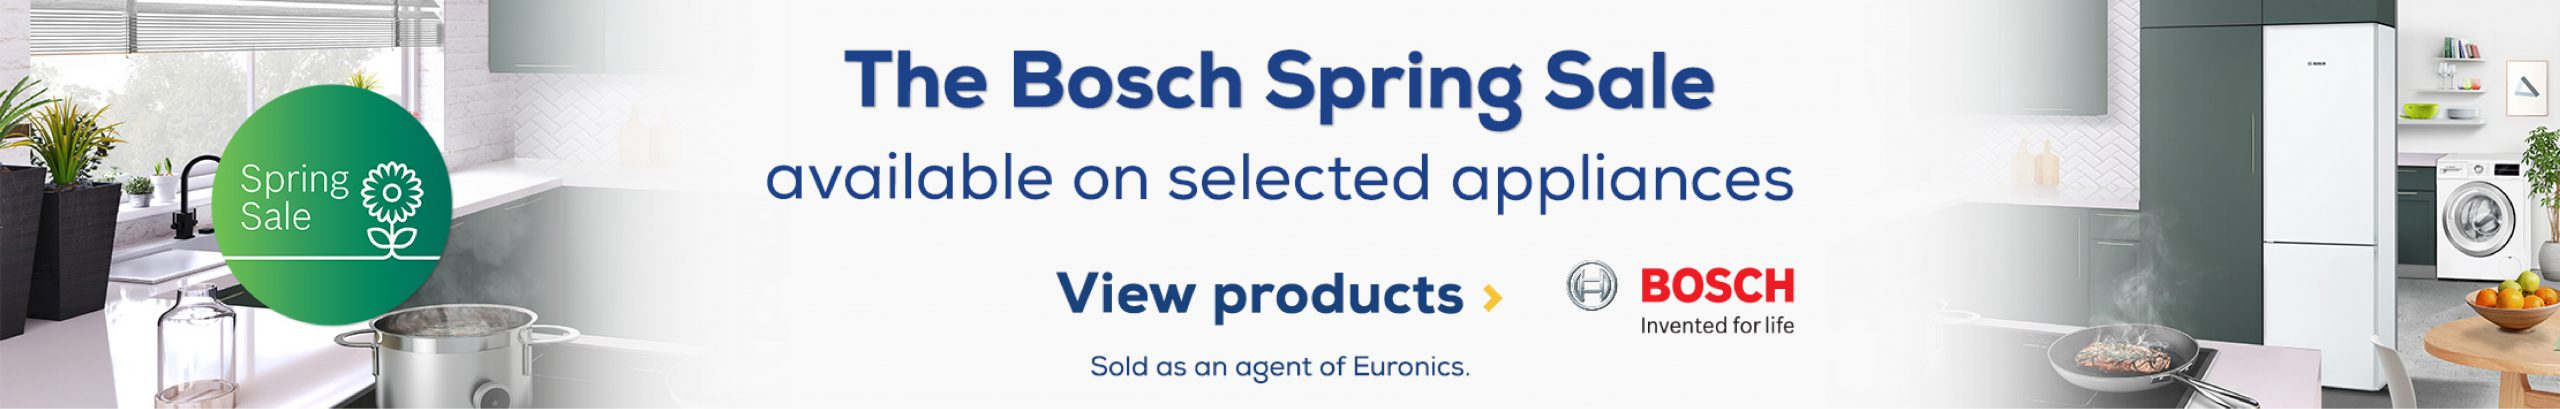 Bosch Spring Sale Web Banners